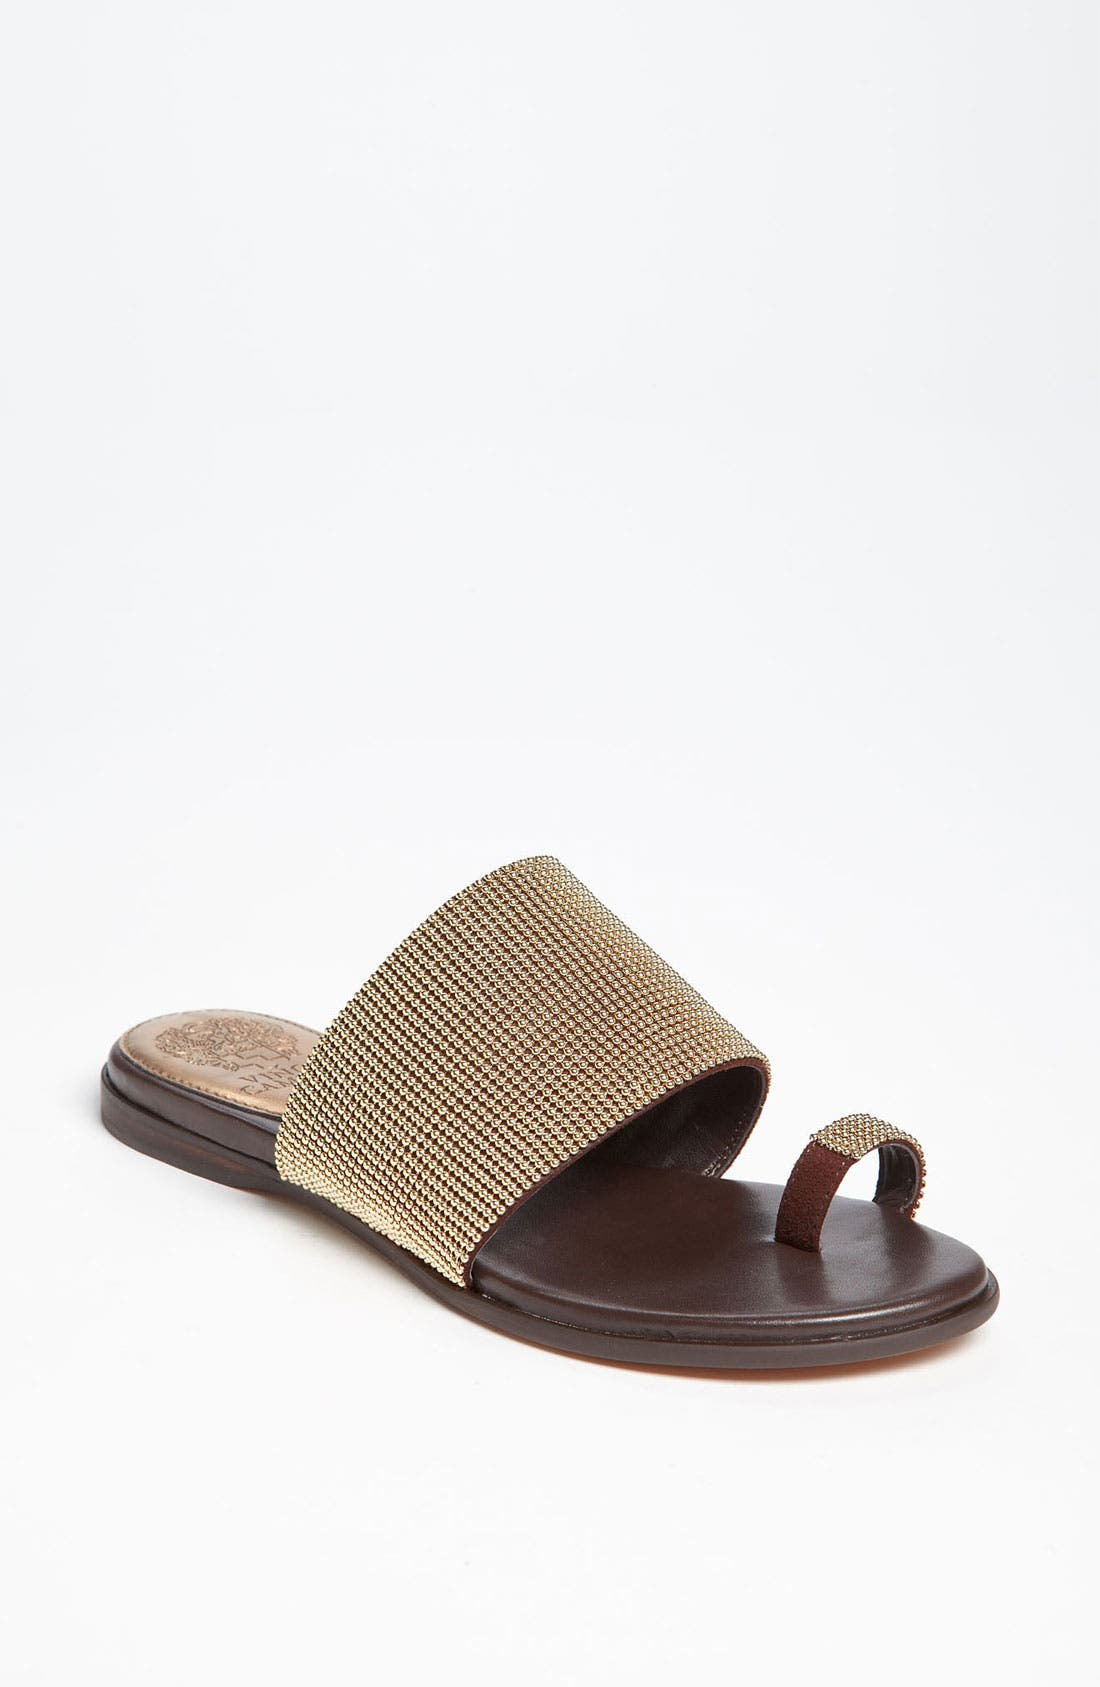 Alternate Image 1 Selected - Vince Camuto 'Athens' Sandal (Online Only)